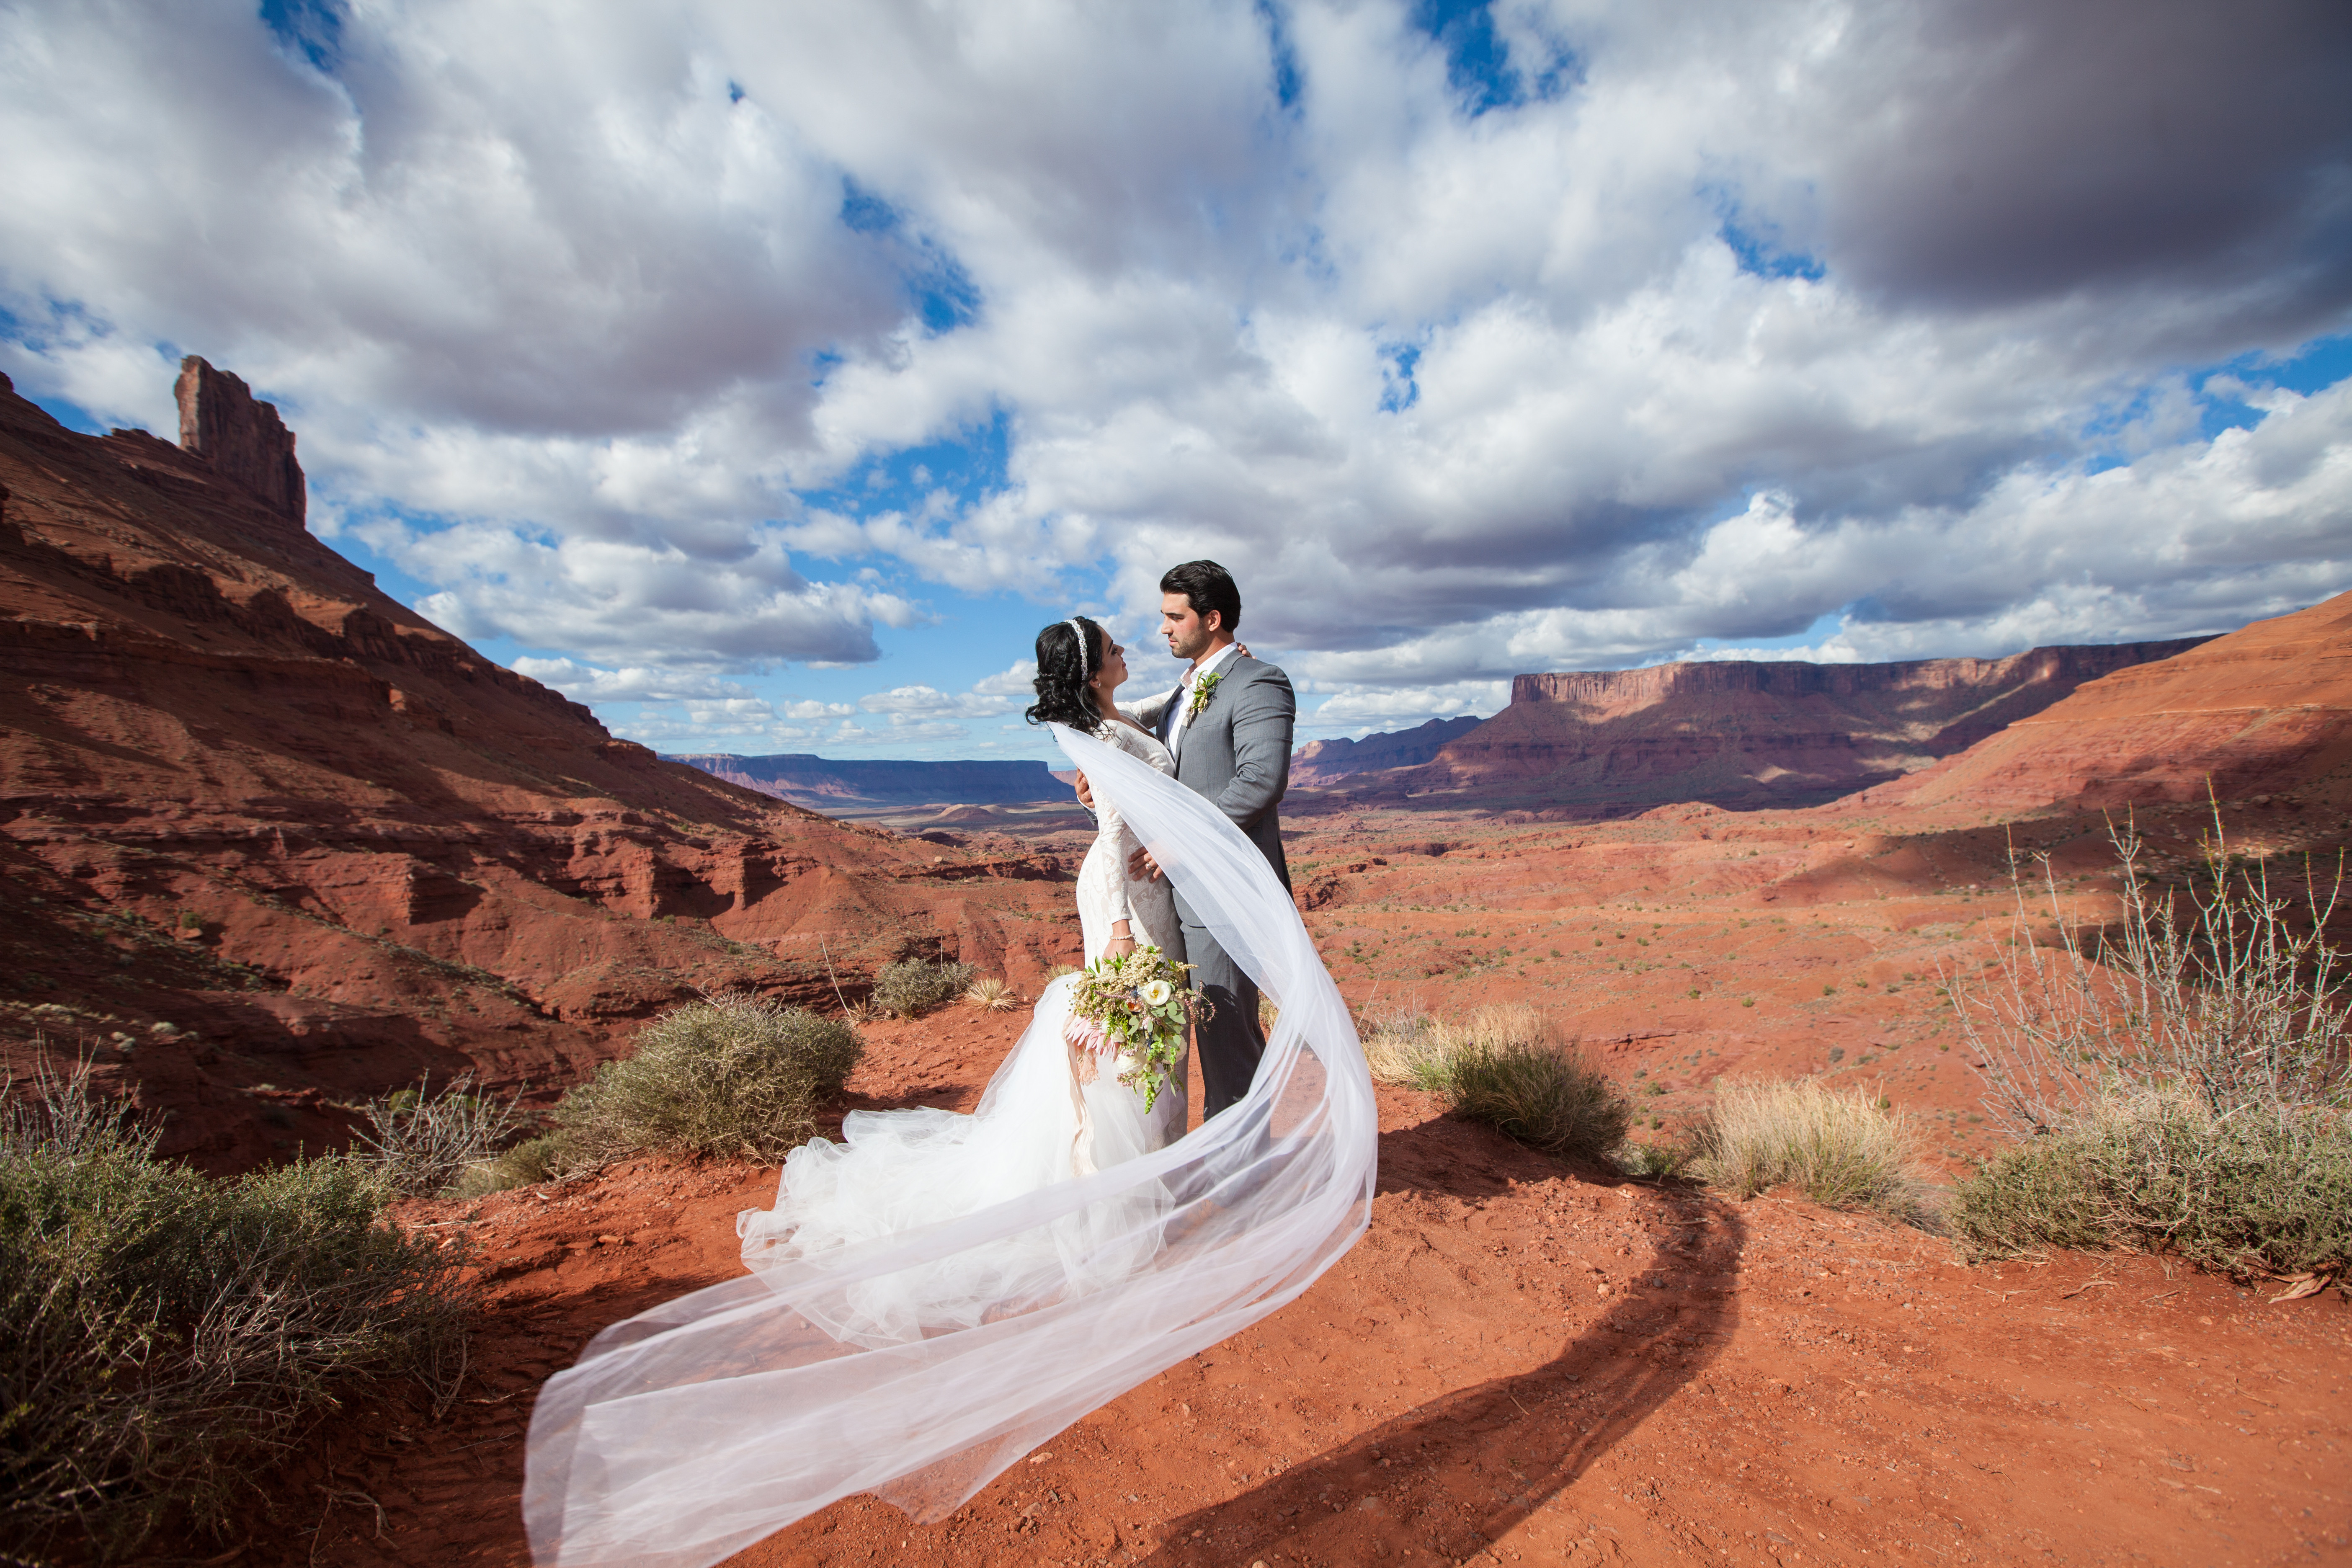 Wedding - See our packages